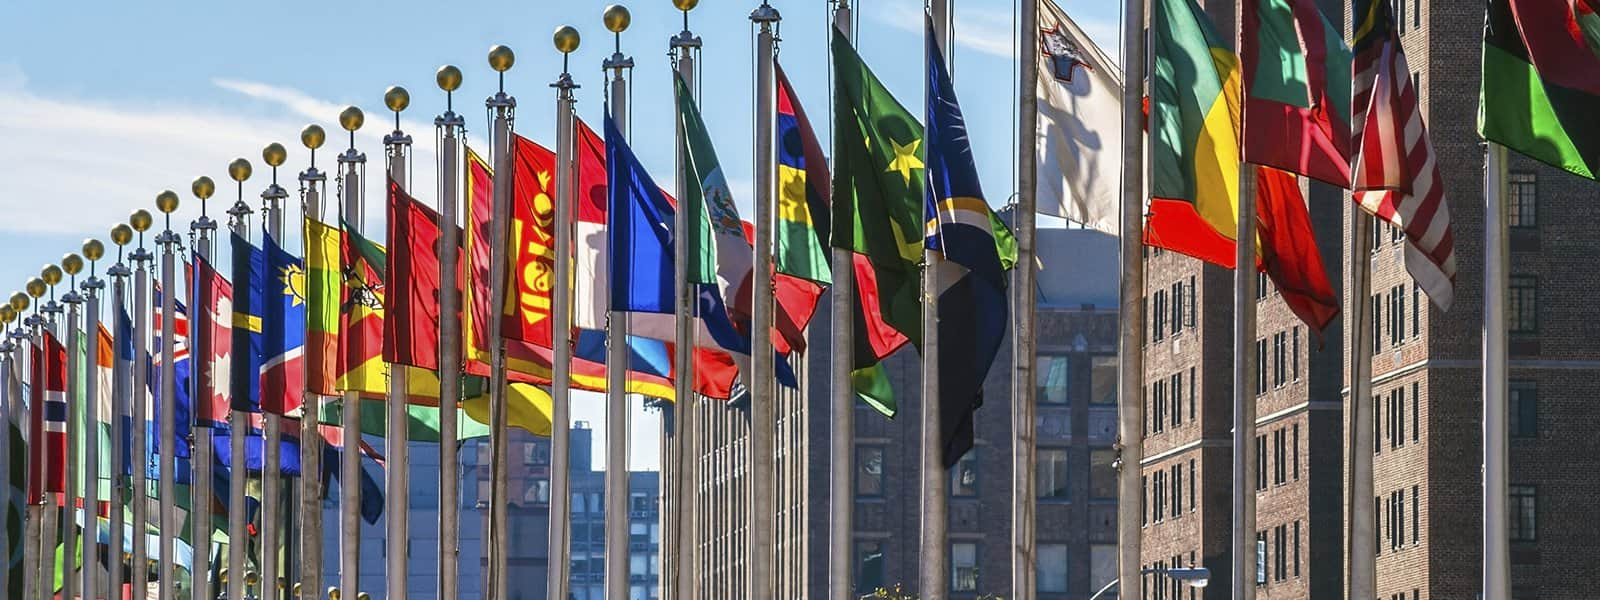 Flags outside the United Nations headquarters in New York, USA